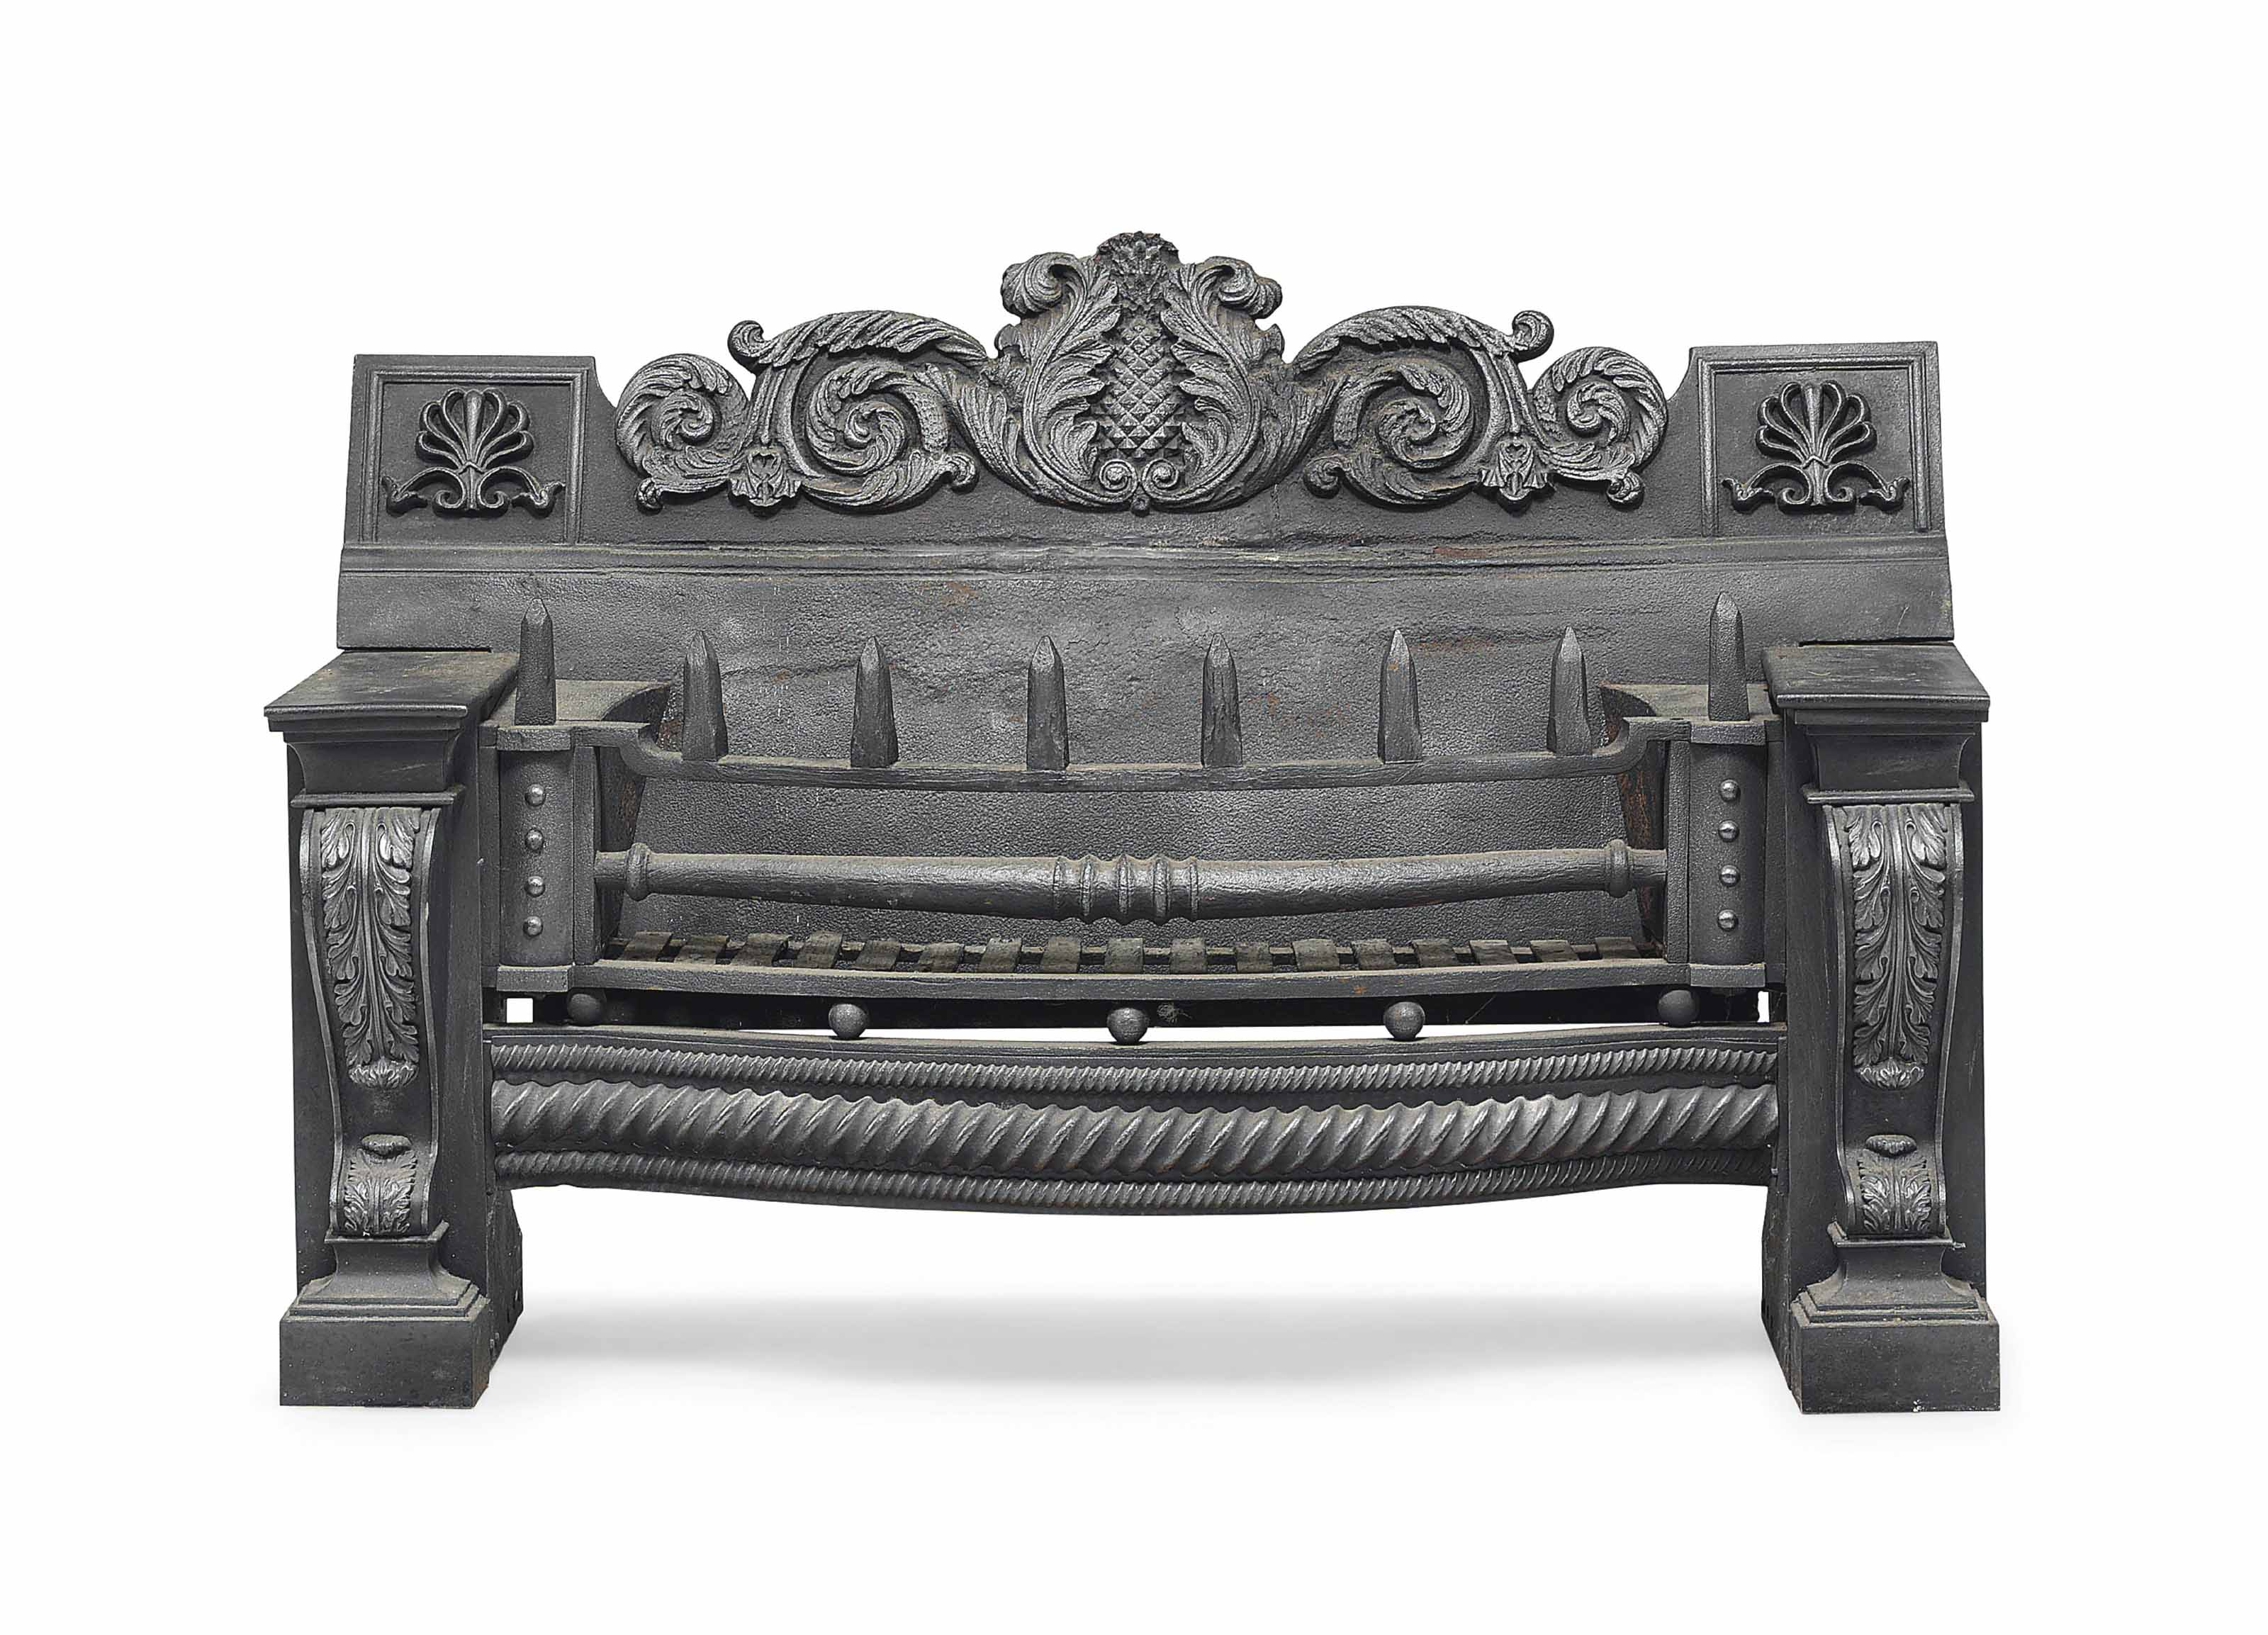 A REGENCY LARGE CAST-IRON FIREGRATE